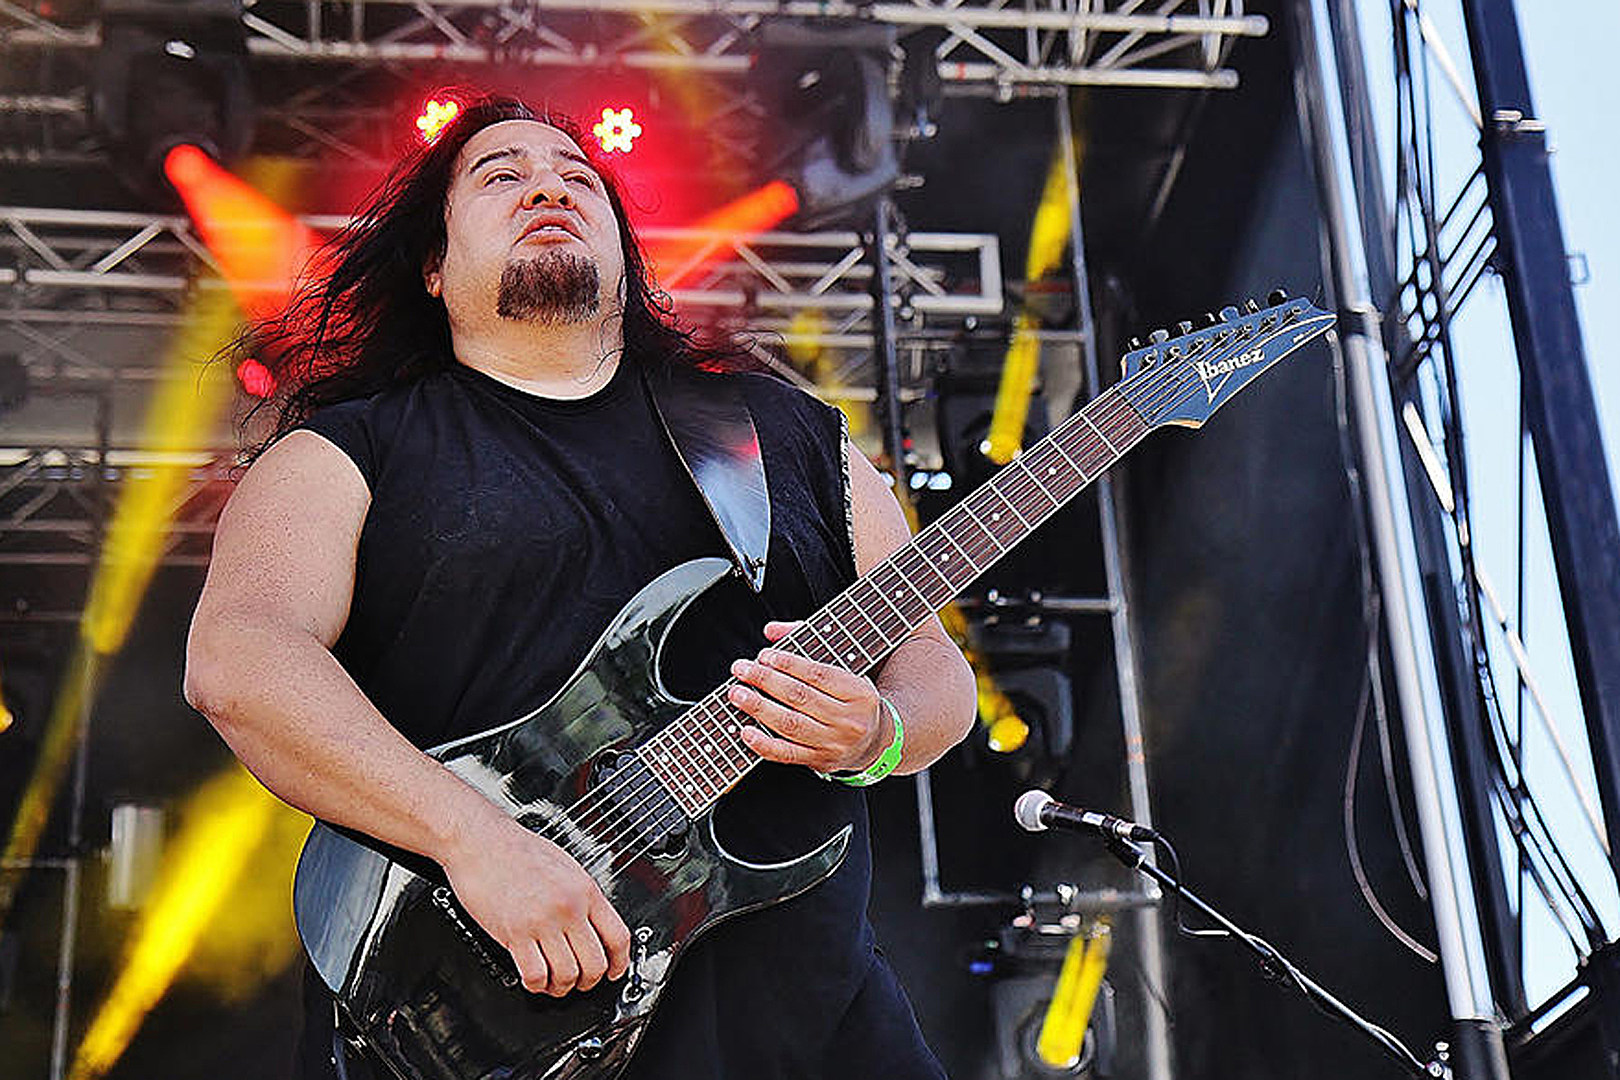 Dino Cazares - 'I Bleed, Live and Die for Fear Factory'